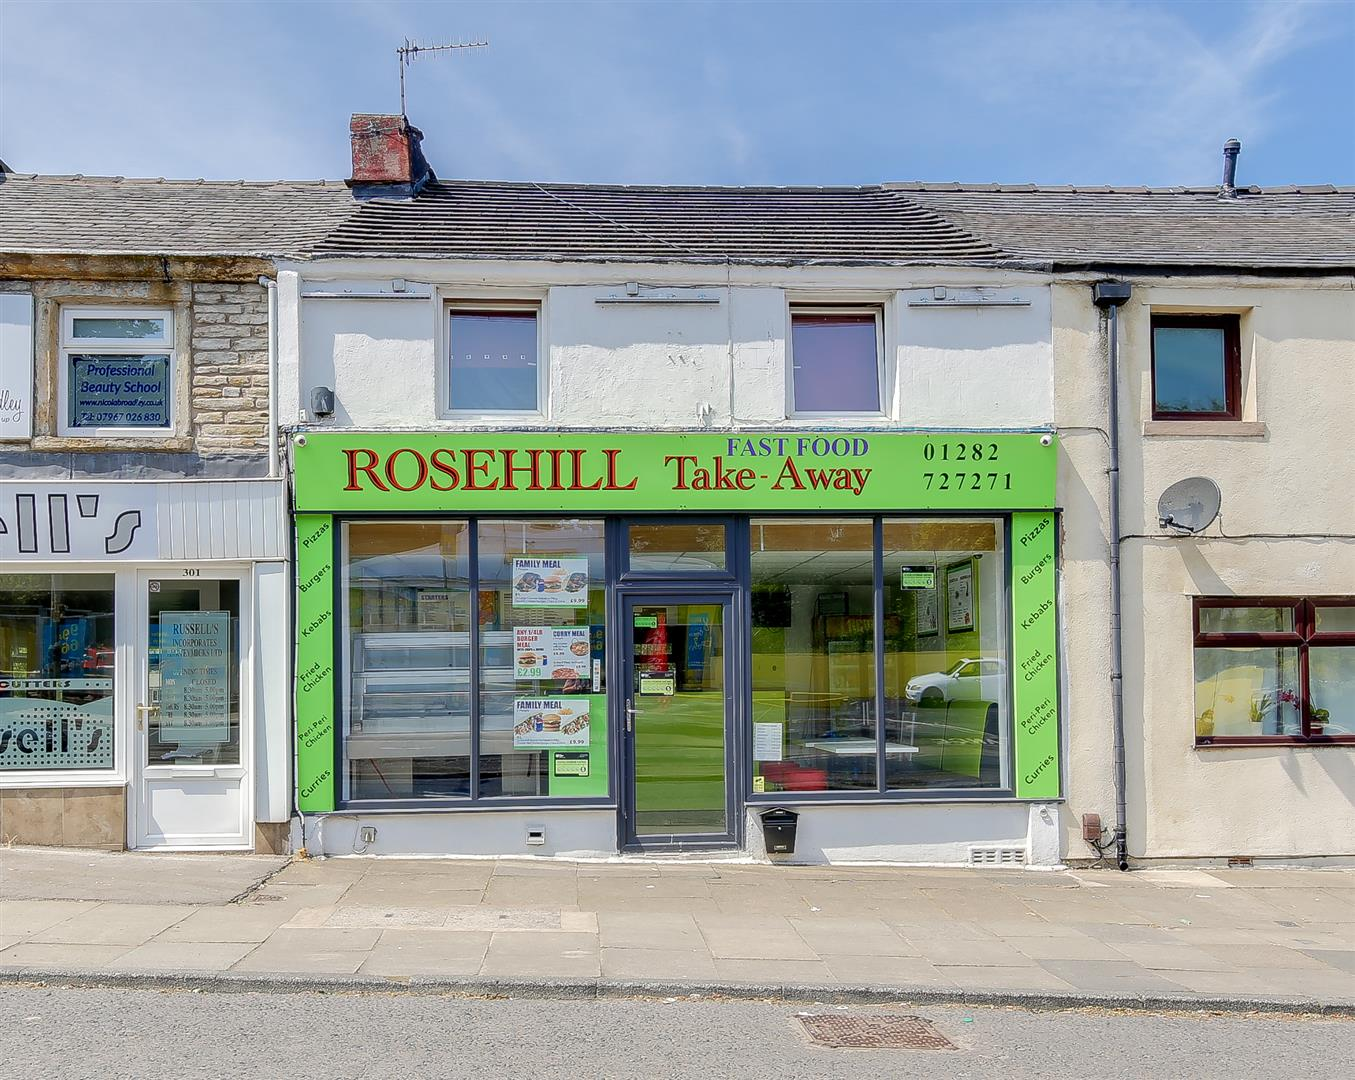 Property for sale in Rosehill Takeaway, Manchester Road, Burnley